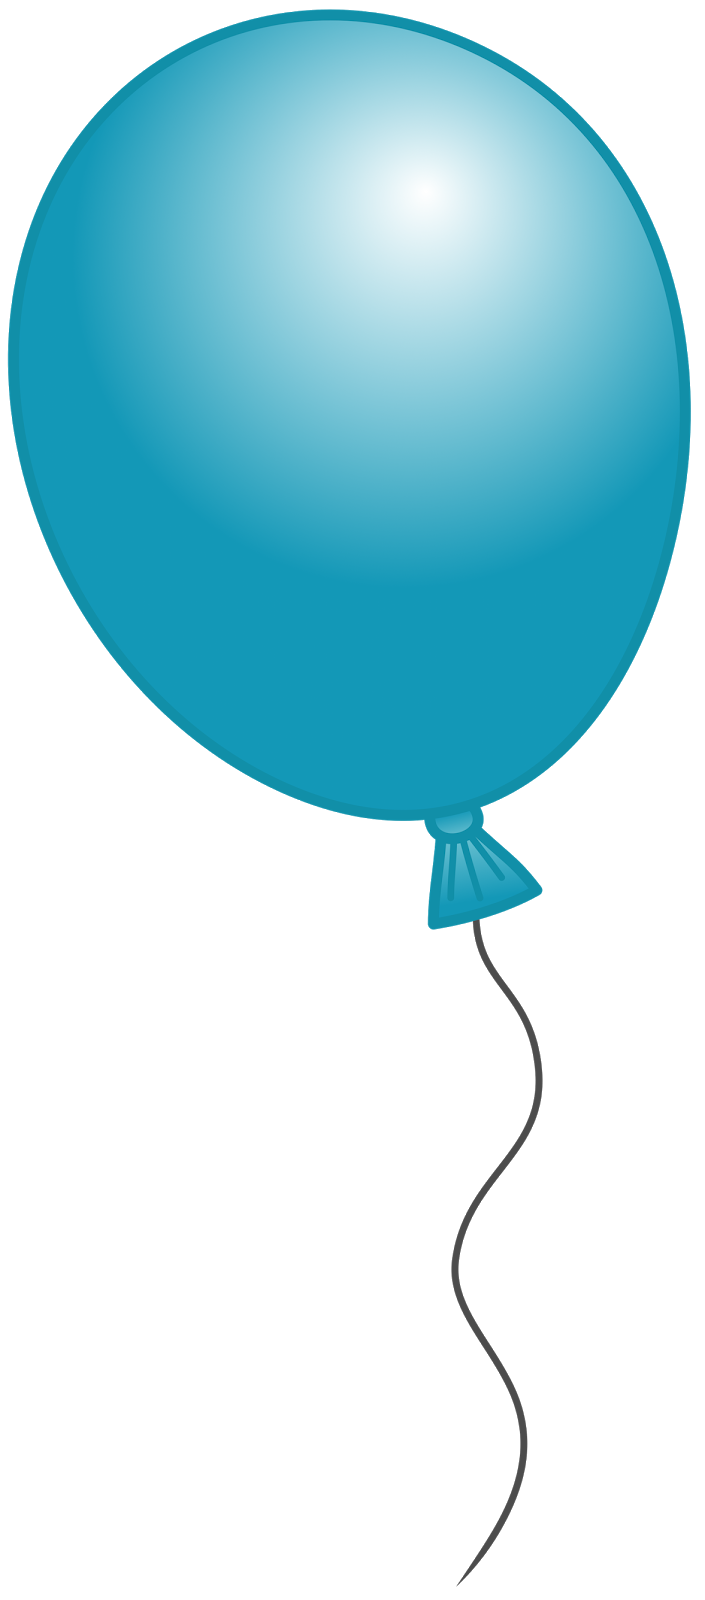 Balloon no background clipart.